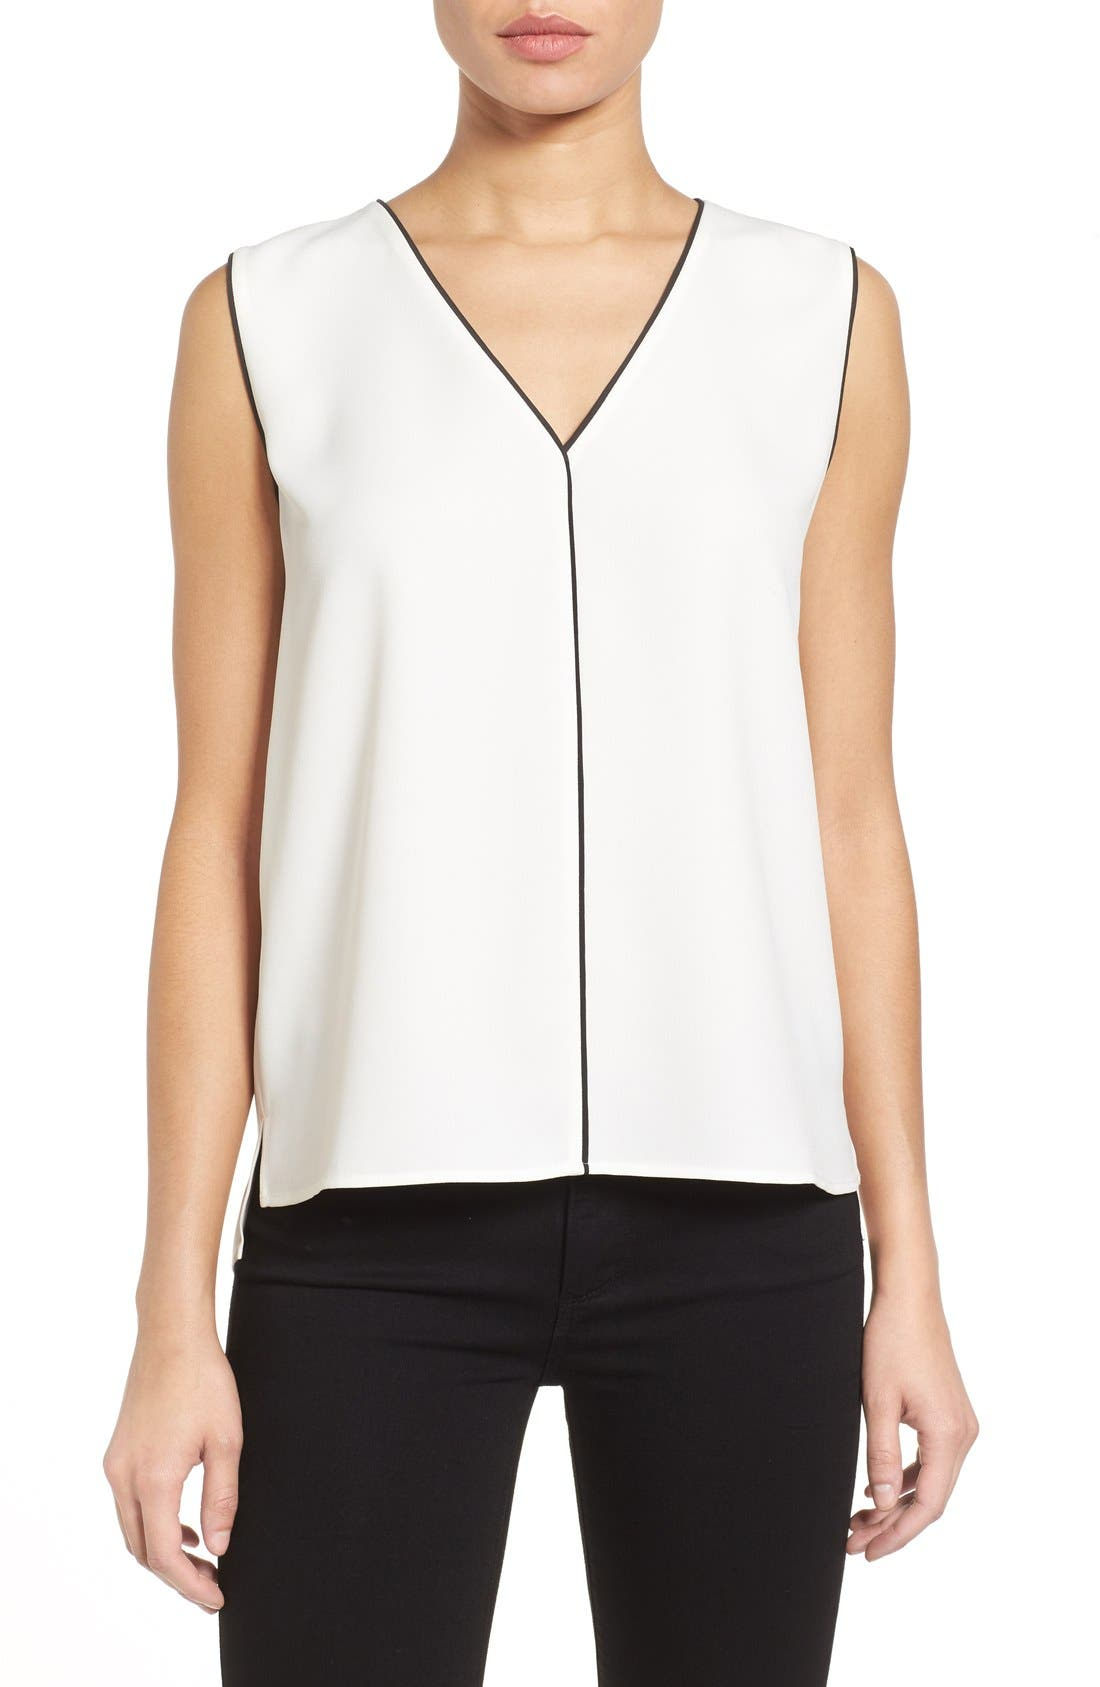 Alternate Image 1 Selected - Halogen® Piped V-Neck Sleeveless Top (Regular & Petite)